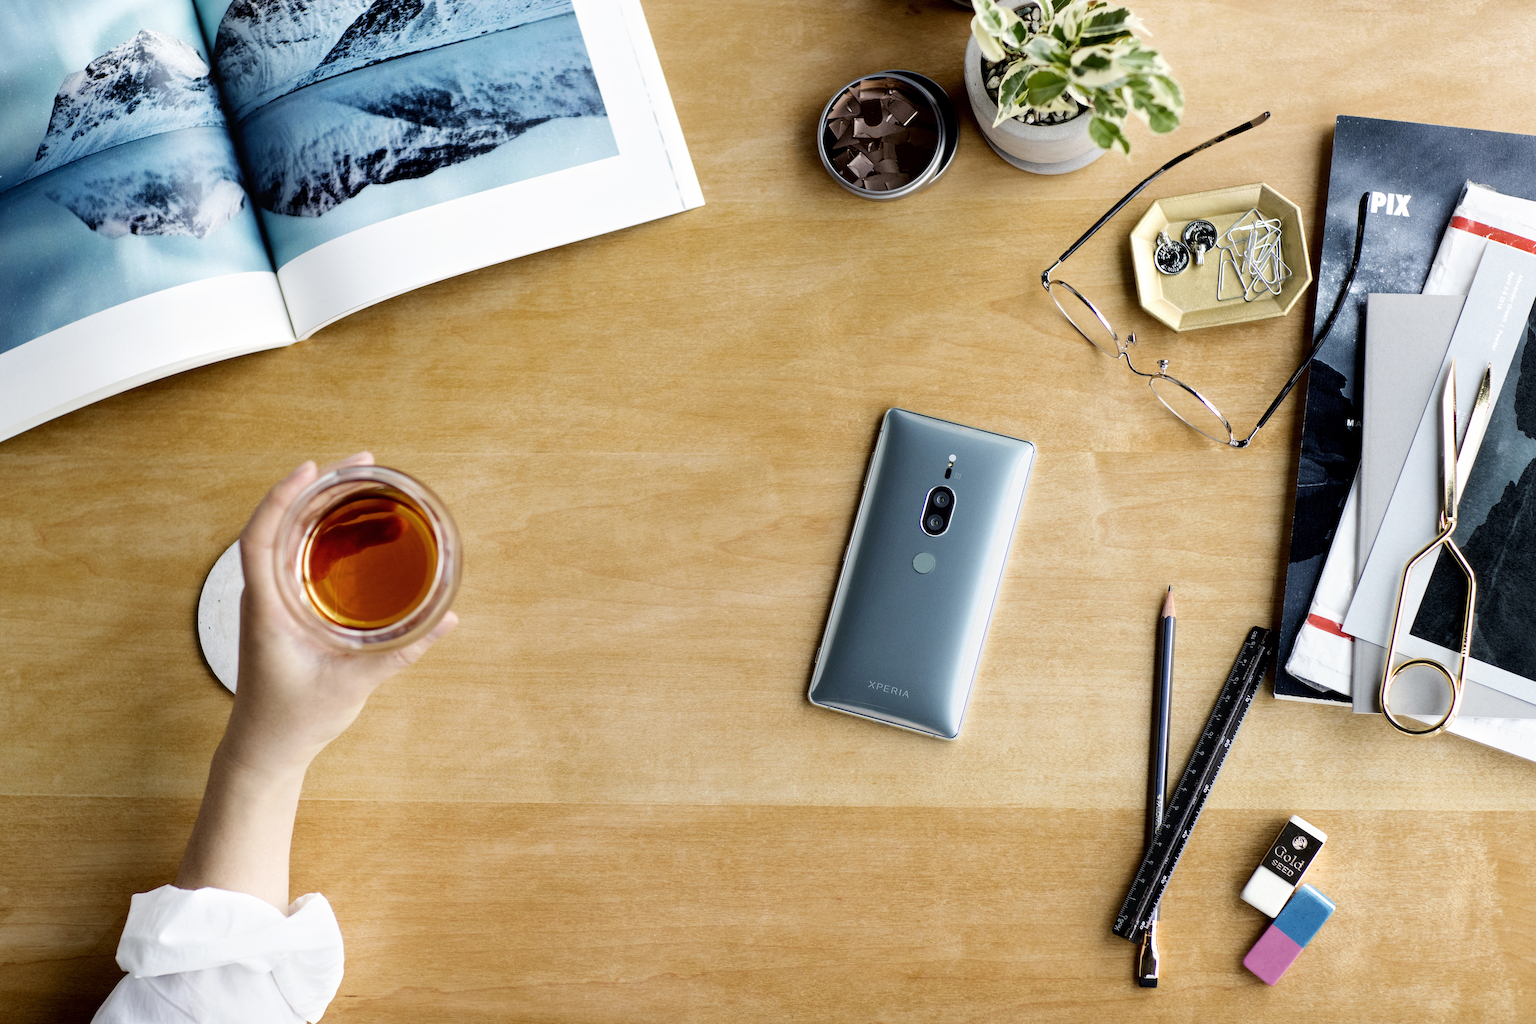 Here's the ultra-low-light phone camera Sony promised 19 xperia xz2 premium chrome silver lifestyle